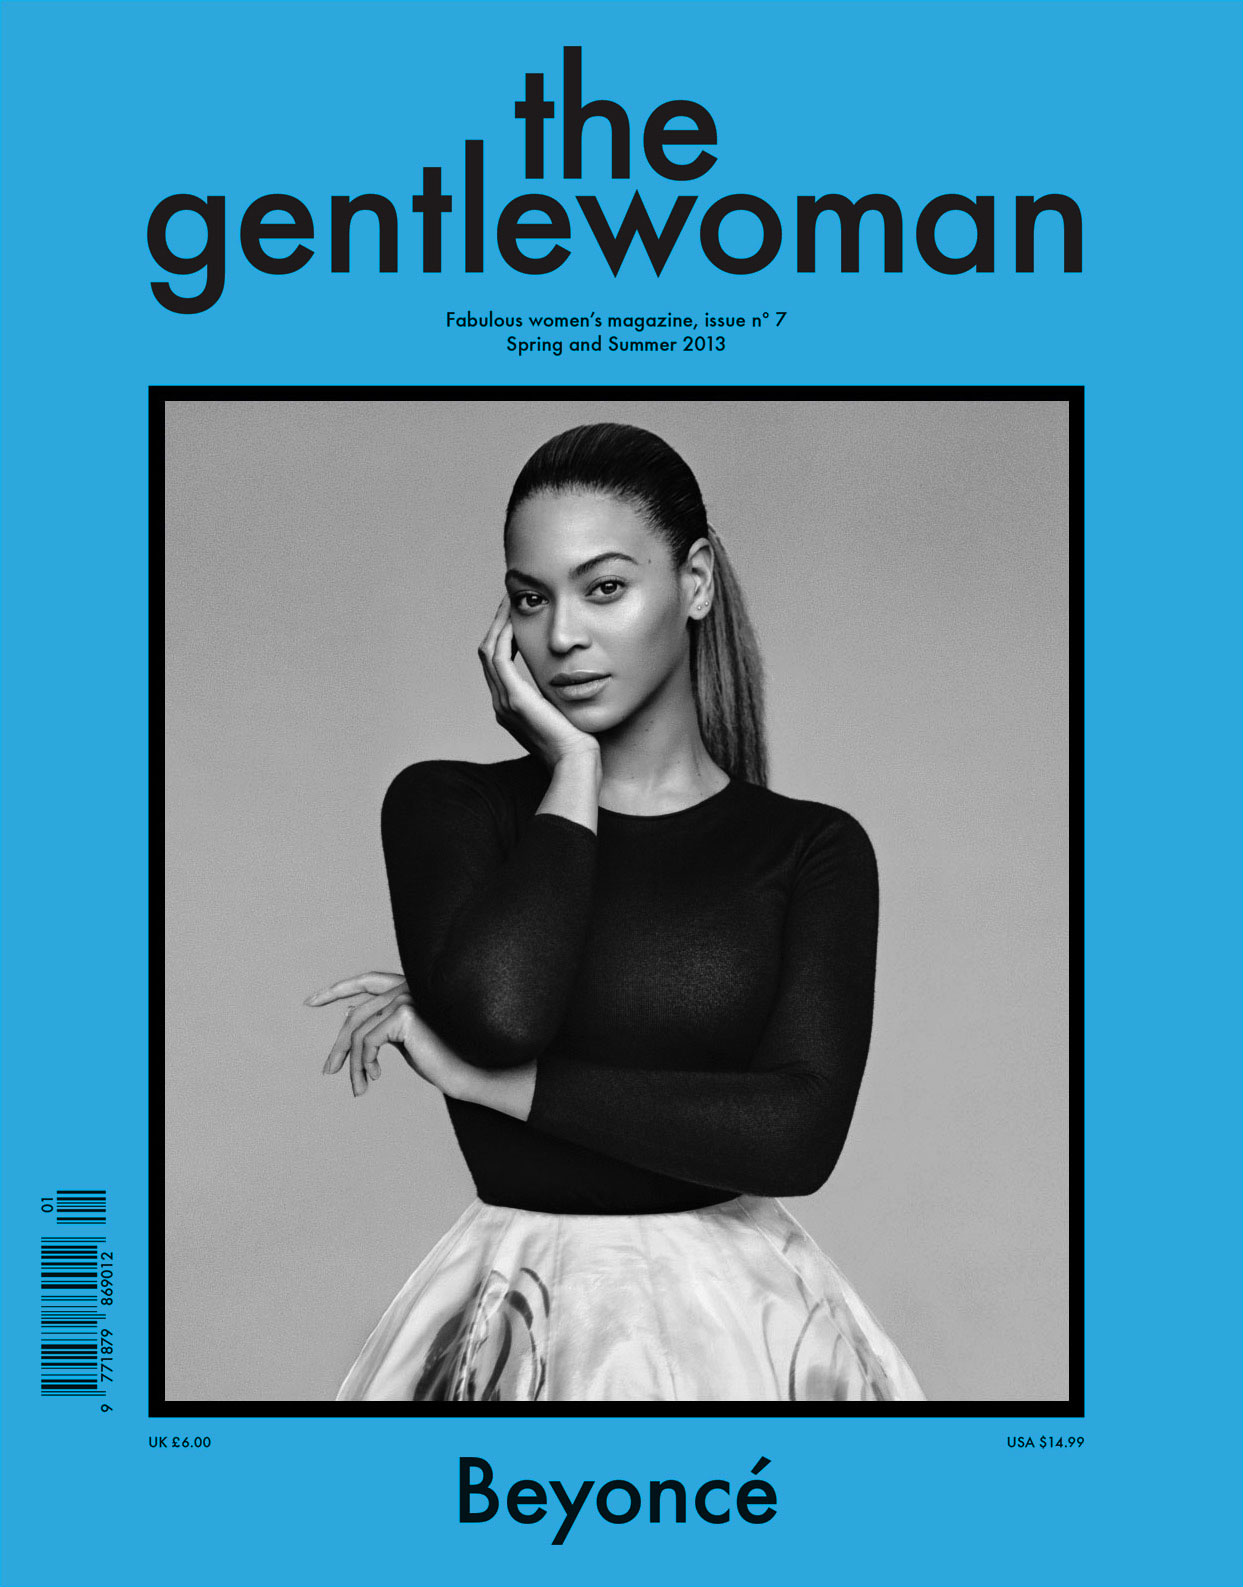 The Gentlewoman Cover Spring and Summer 2013 Beyonc